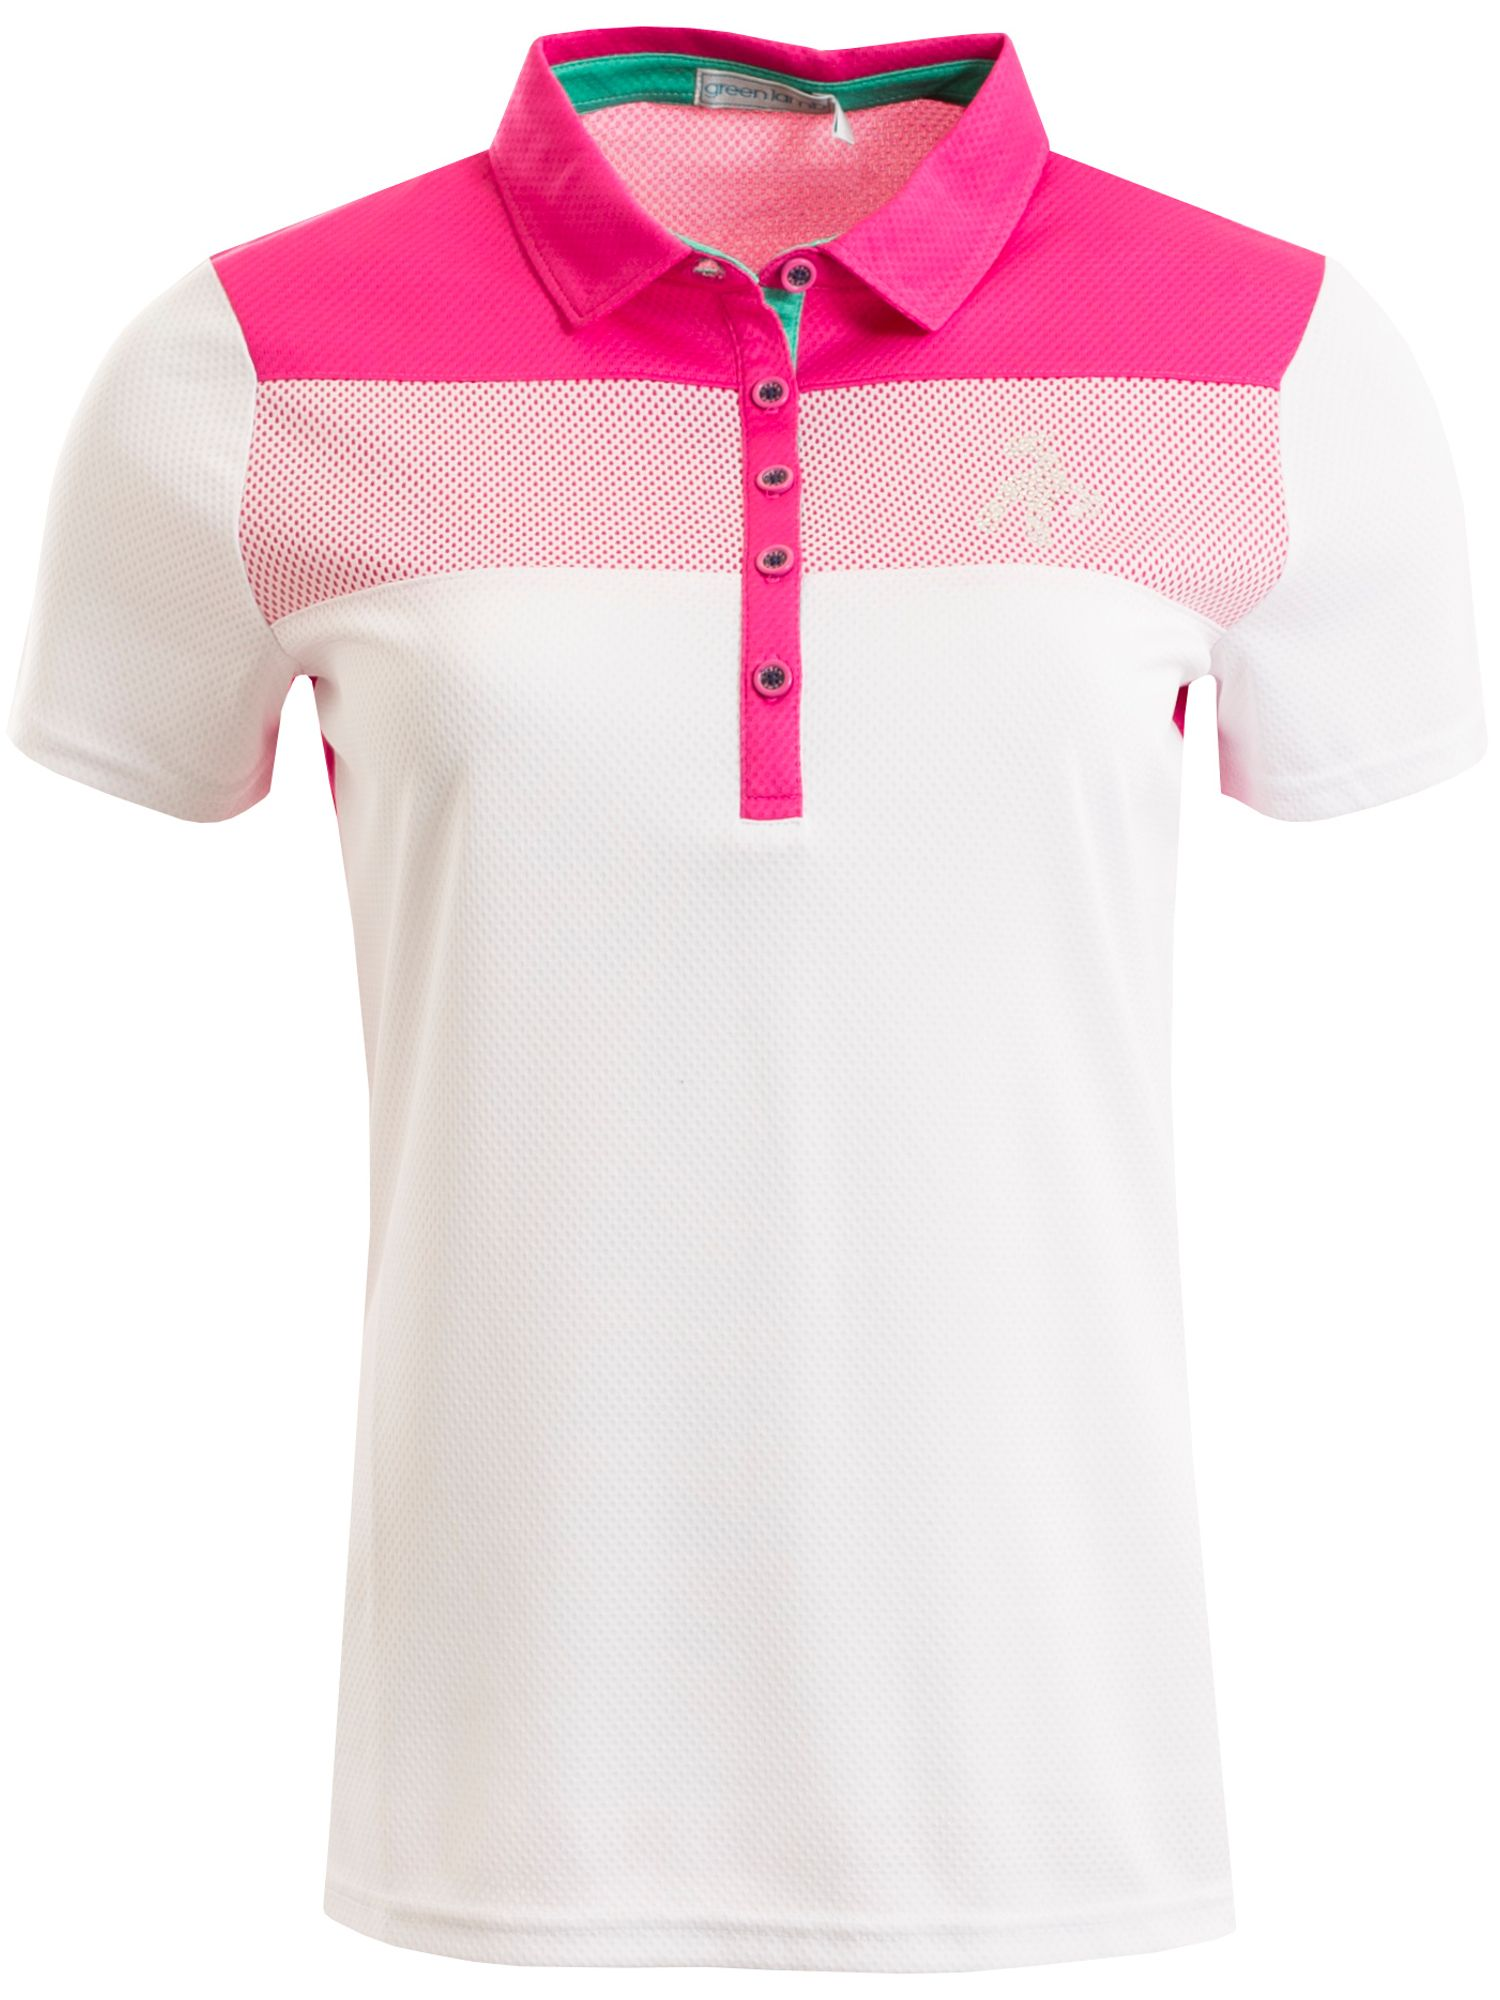 Green Lamb Fifi Chest Panel Mesh Dot Polo, Pink